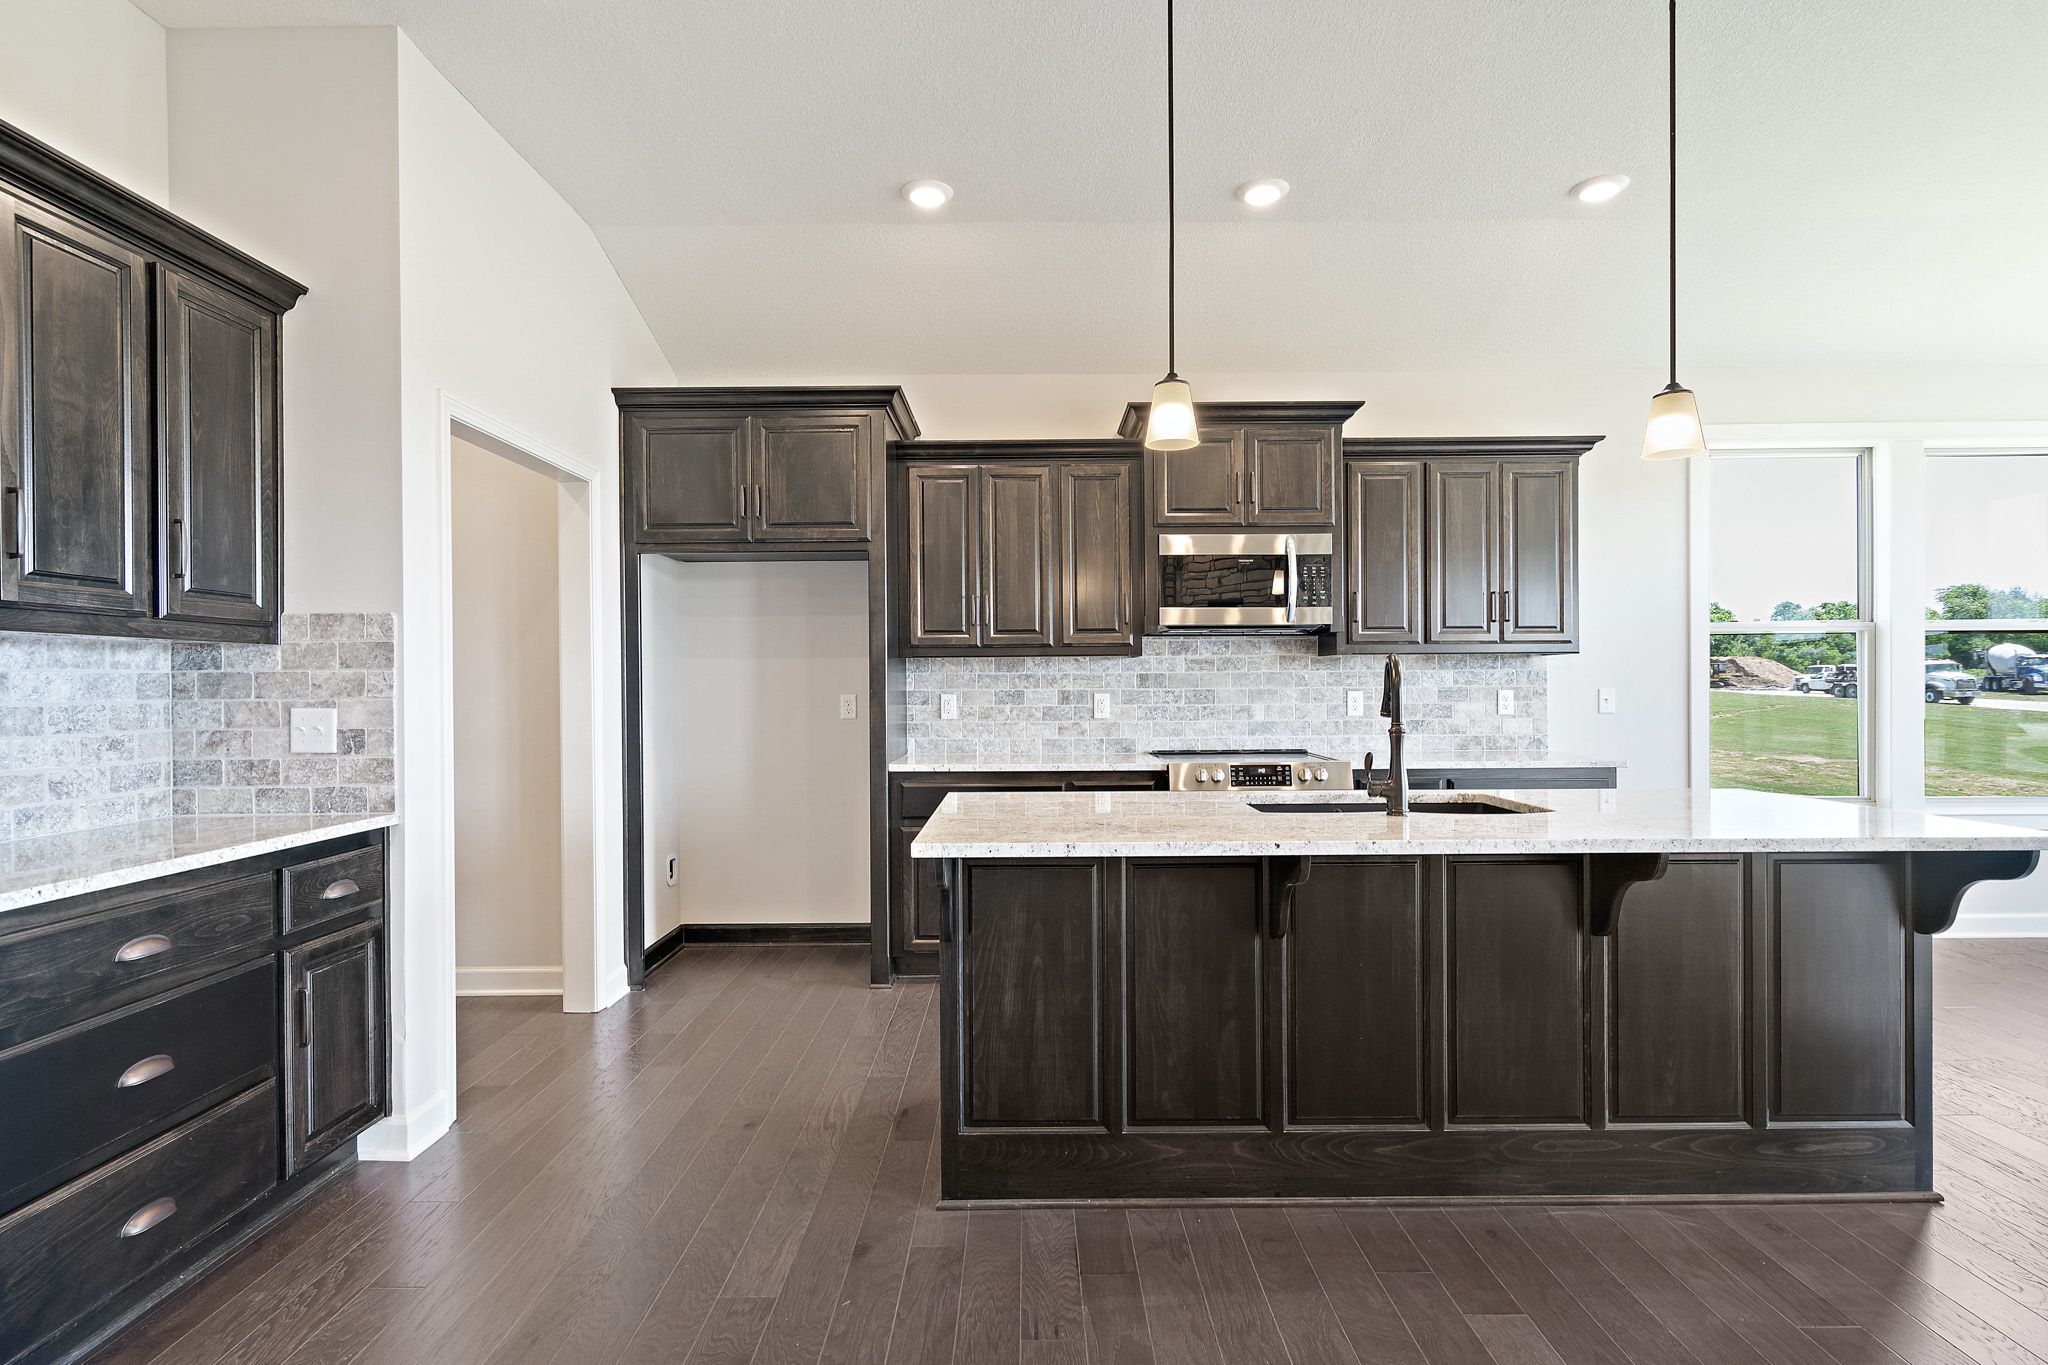 Kitchen featured in the Somerset - IA By Summit Homes in Des Moines, IA